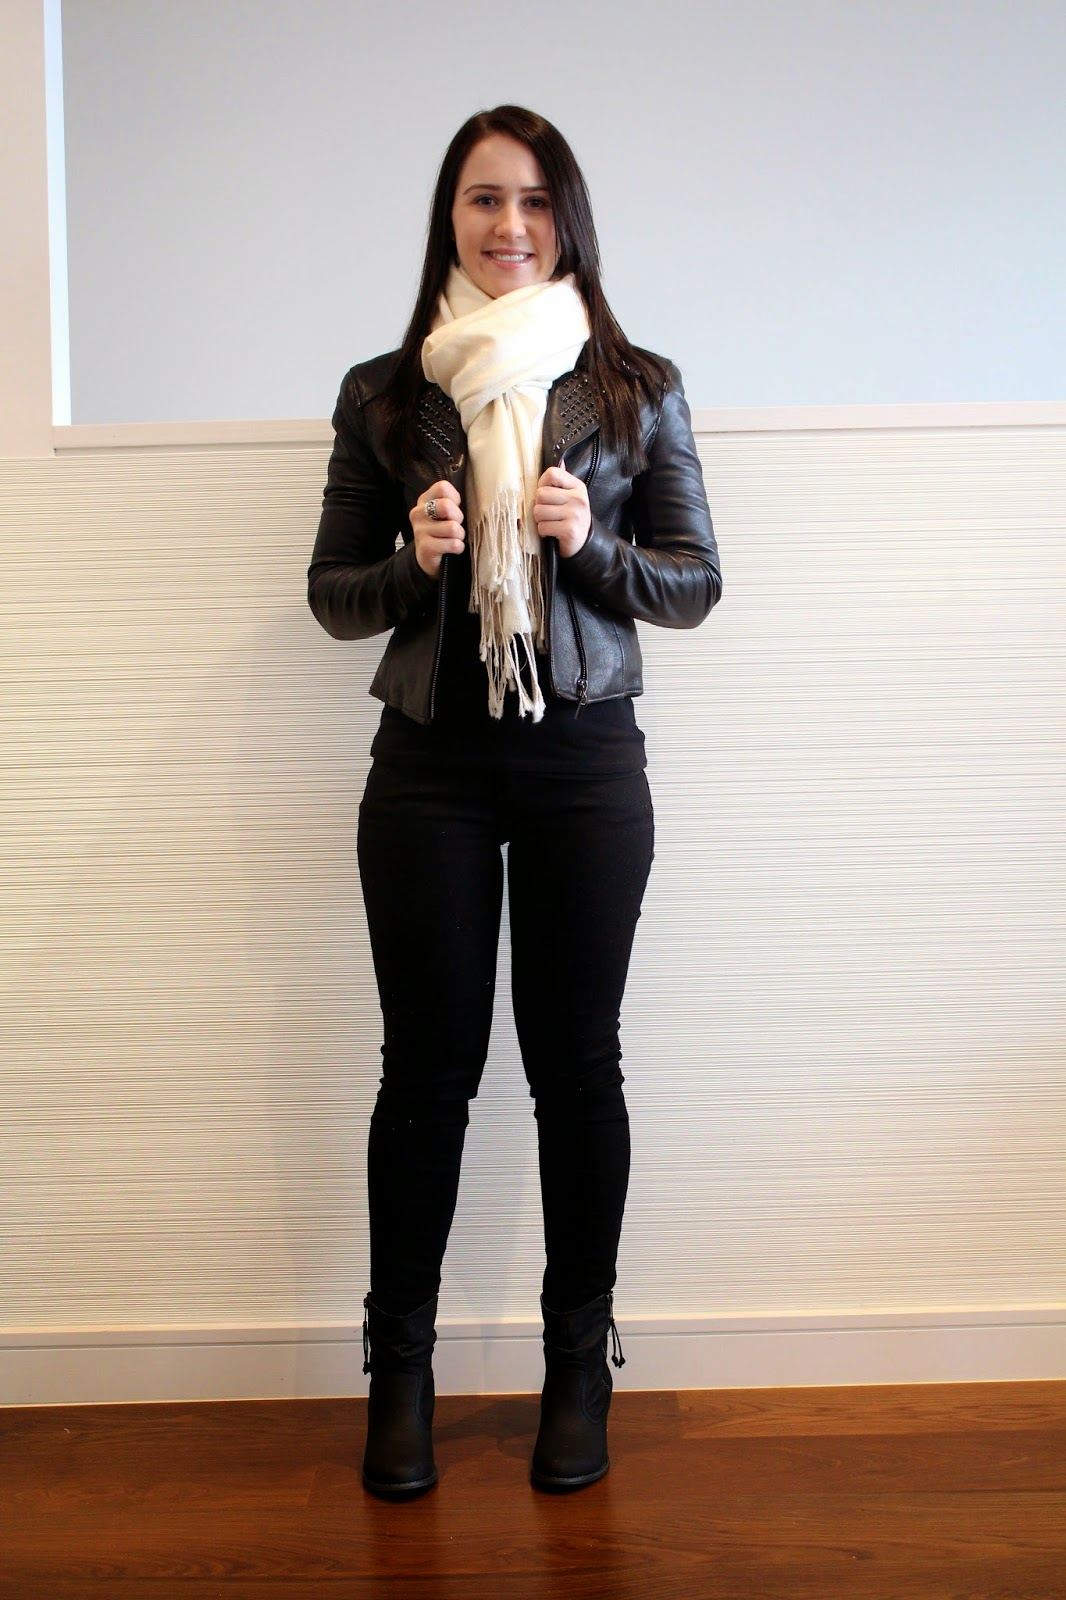 Black jeans, black long sleeved top, black booties, cream scarf, black studded leather jacket, melbourne outfit, winter outfit, everyday outfit, petite girl outfit, all black outfit, leather outfit, freezing weather outfit